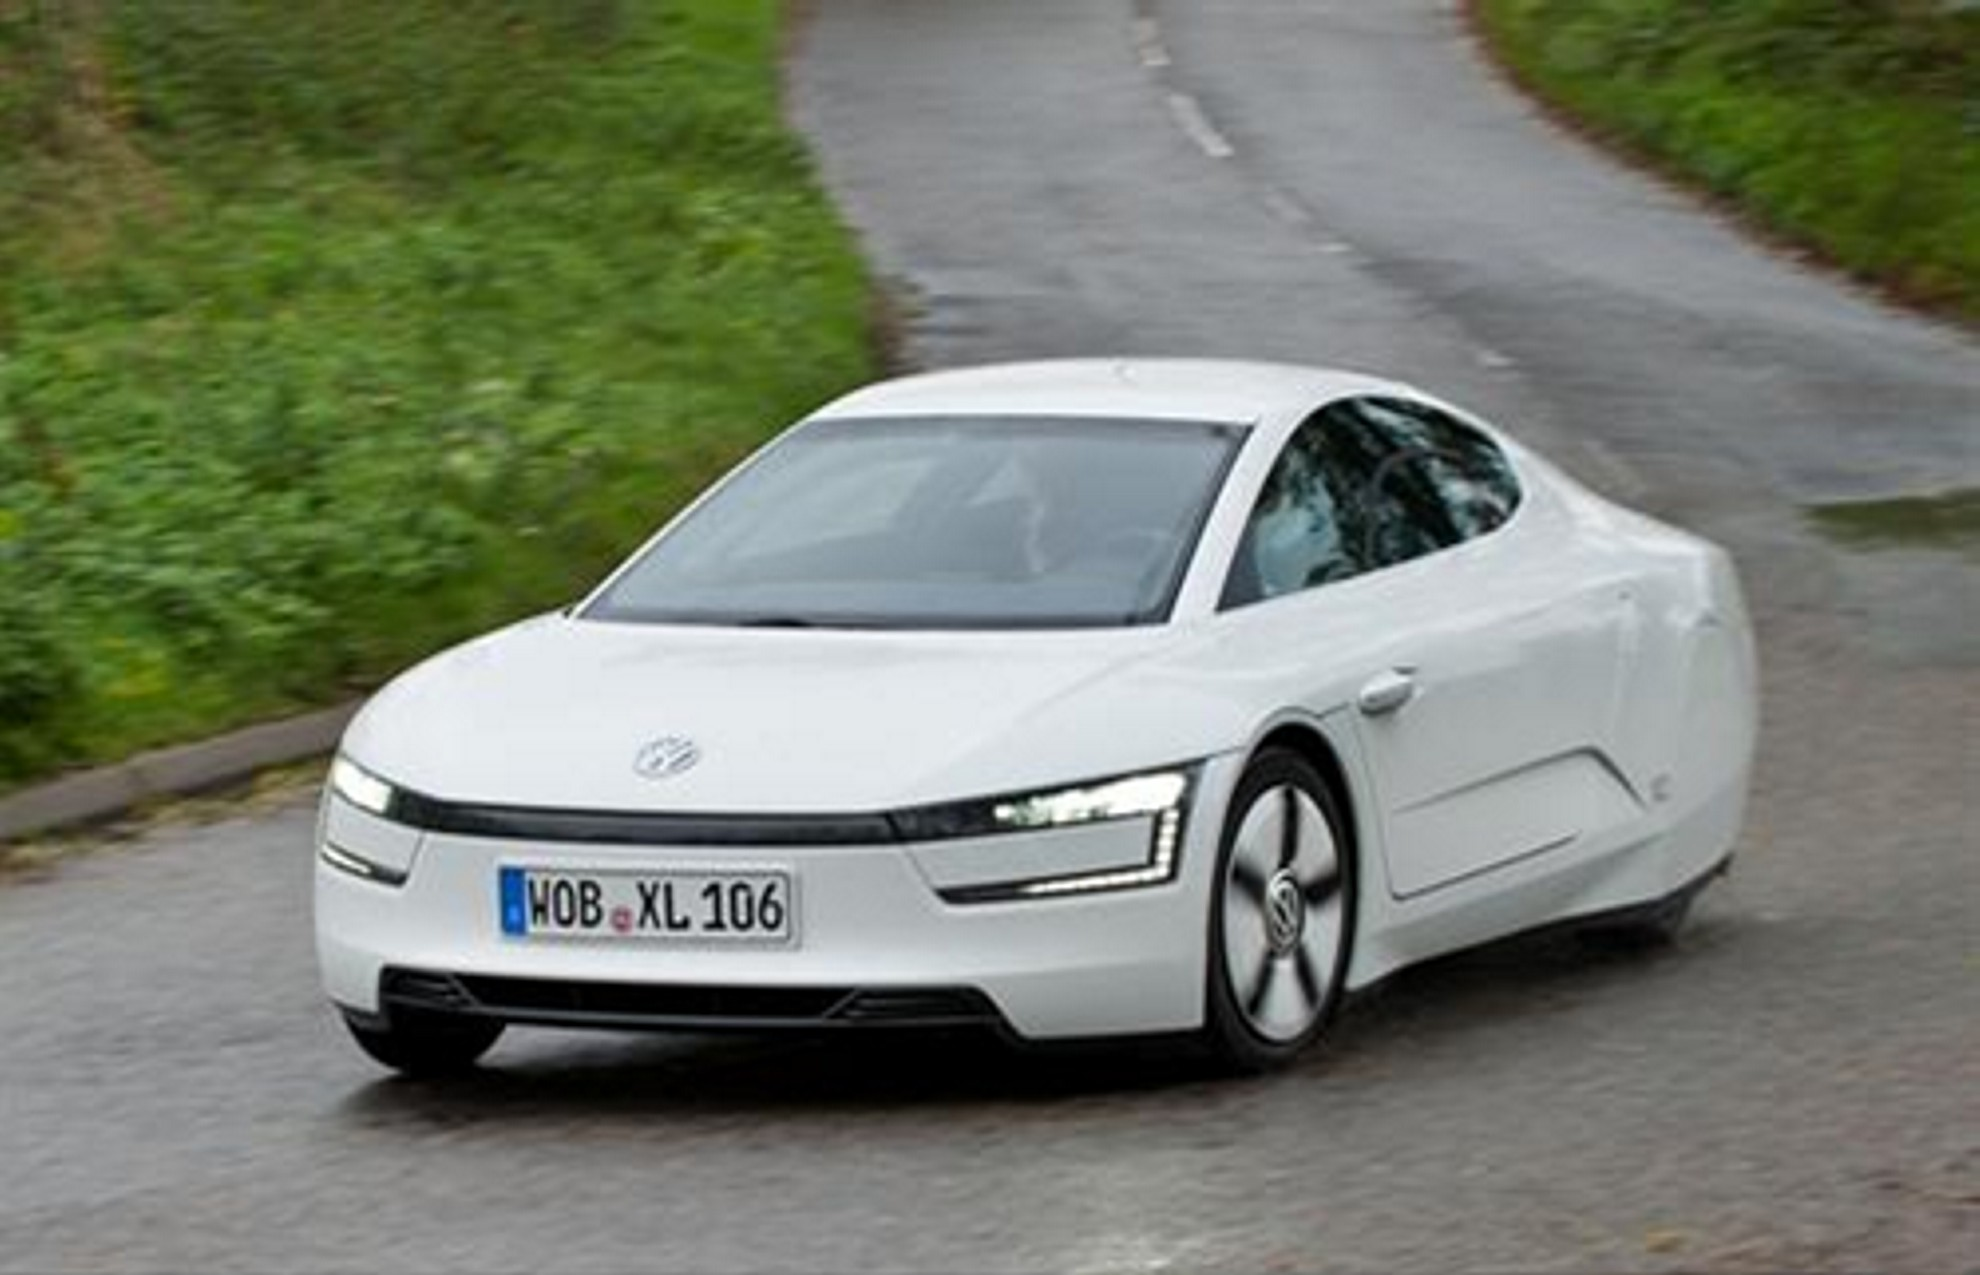 volkswagen xl1 claims bbc topgear magazine innovation award. Black Bedroom Furniture Sets. Home Design Ideas